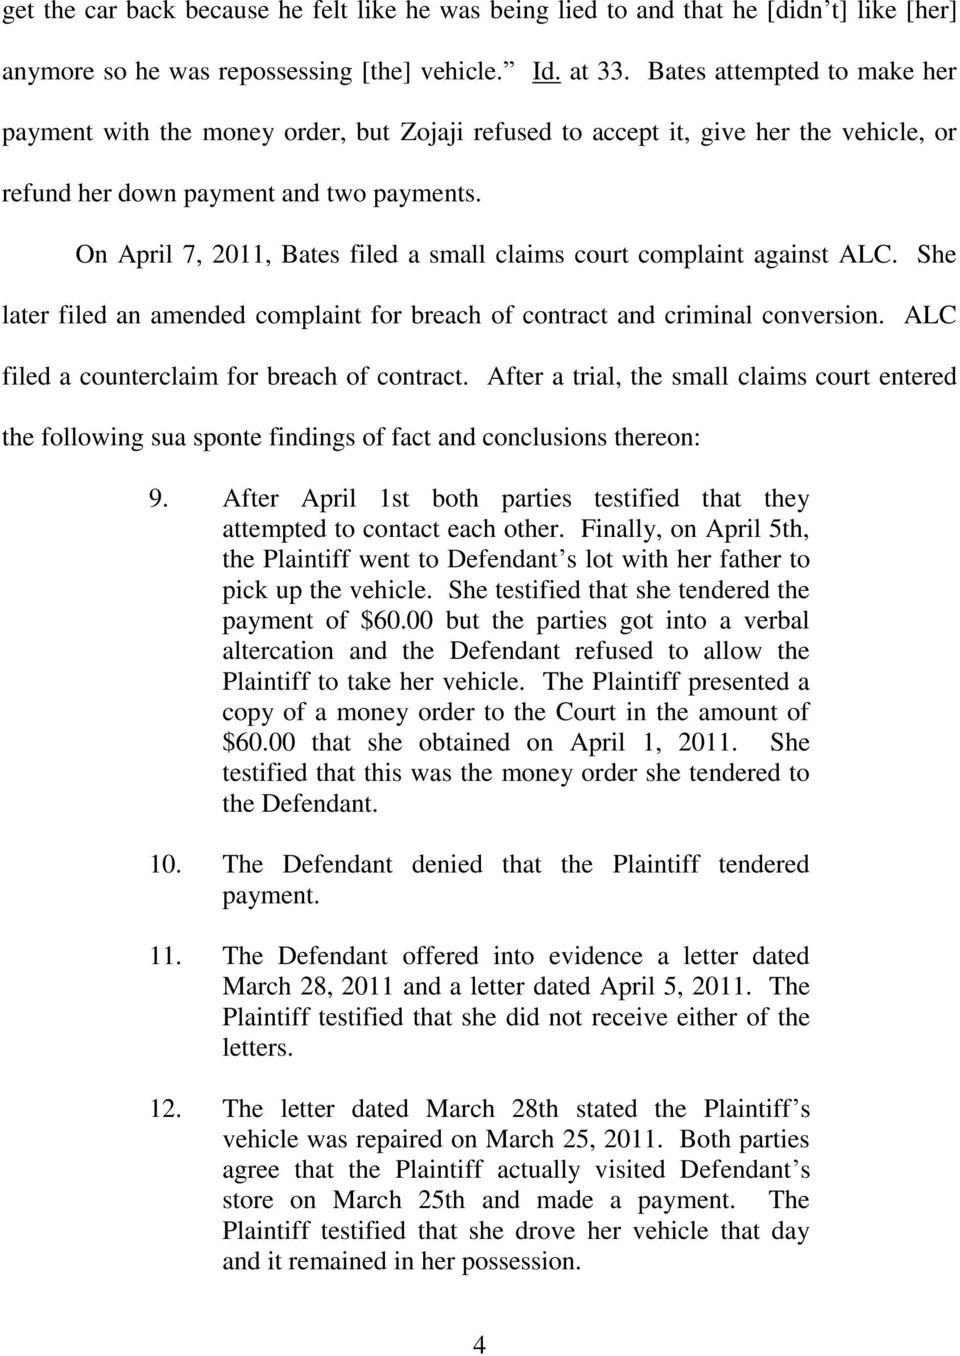 On April 7, 2011, Bates filed a small claims court complaint against ALC. She later filed an amended complaint for breach of contract and criminal conversion.